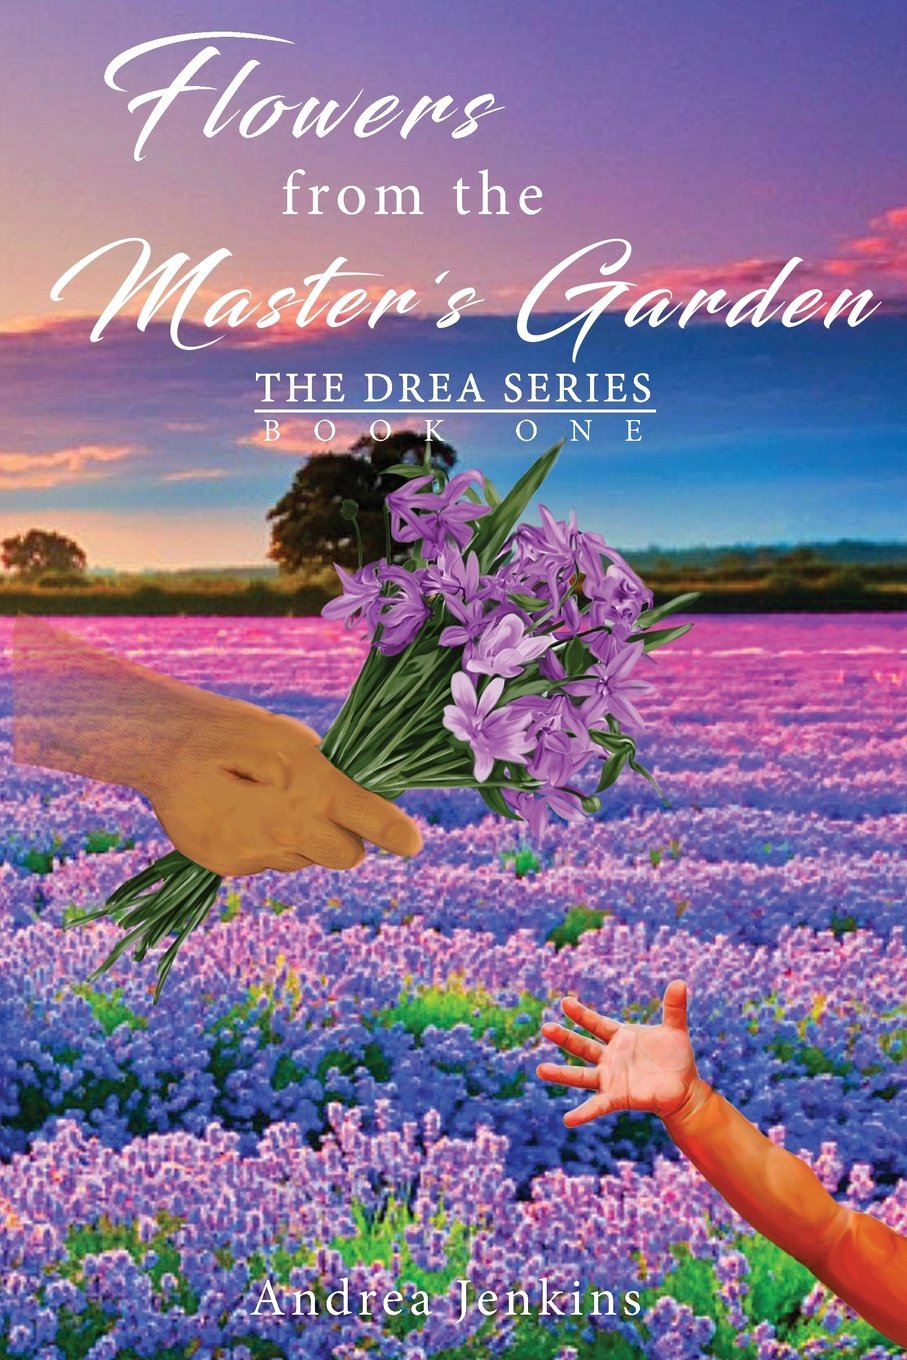 Download FLOWERS FROM THE MASTER'S GARDEN: THE DREA SERIES  BOOK ONE PDF